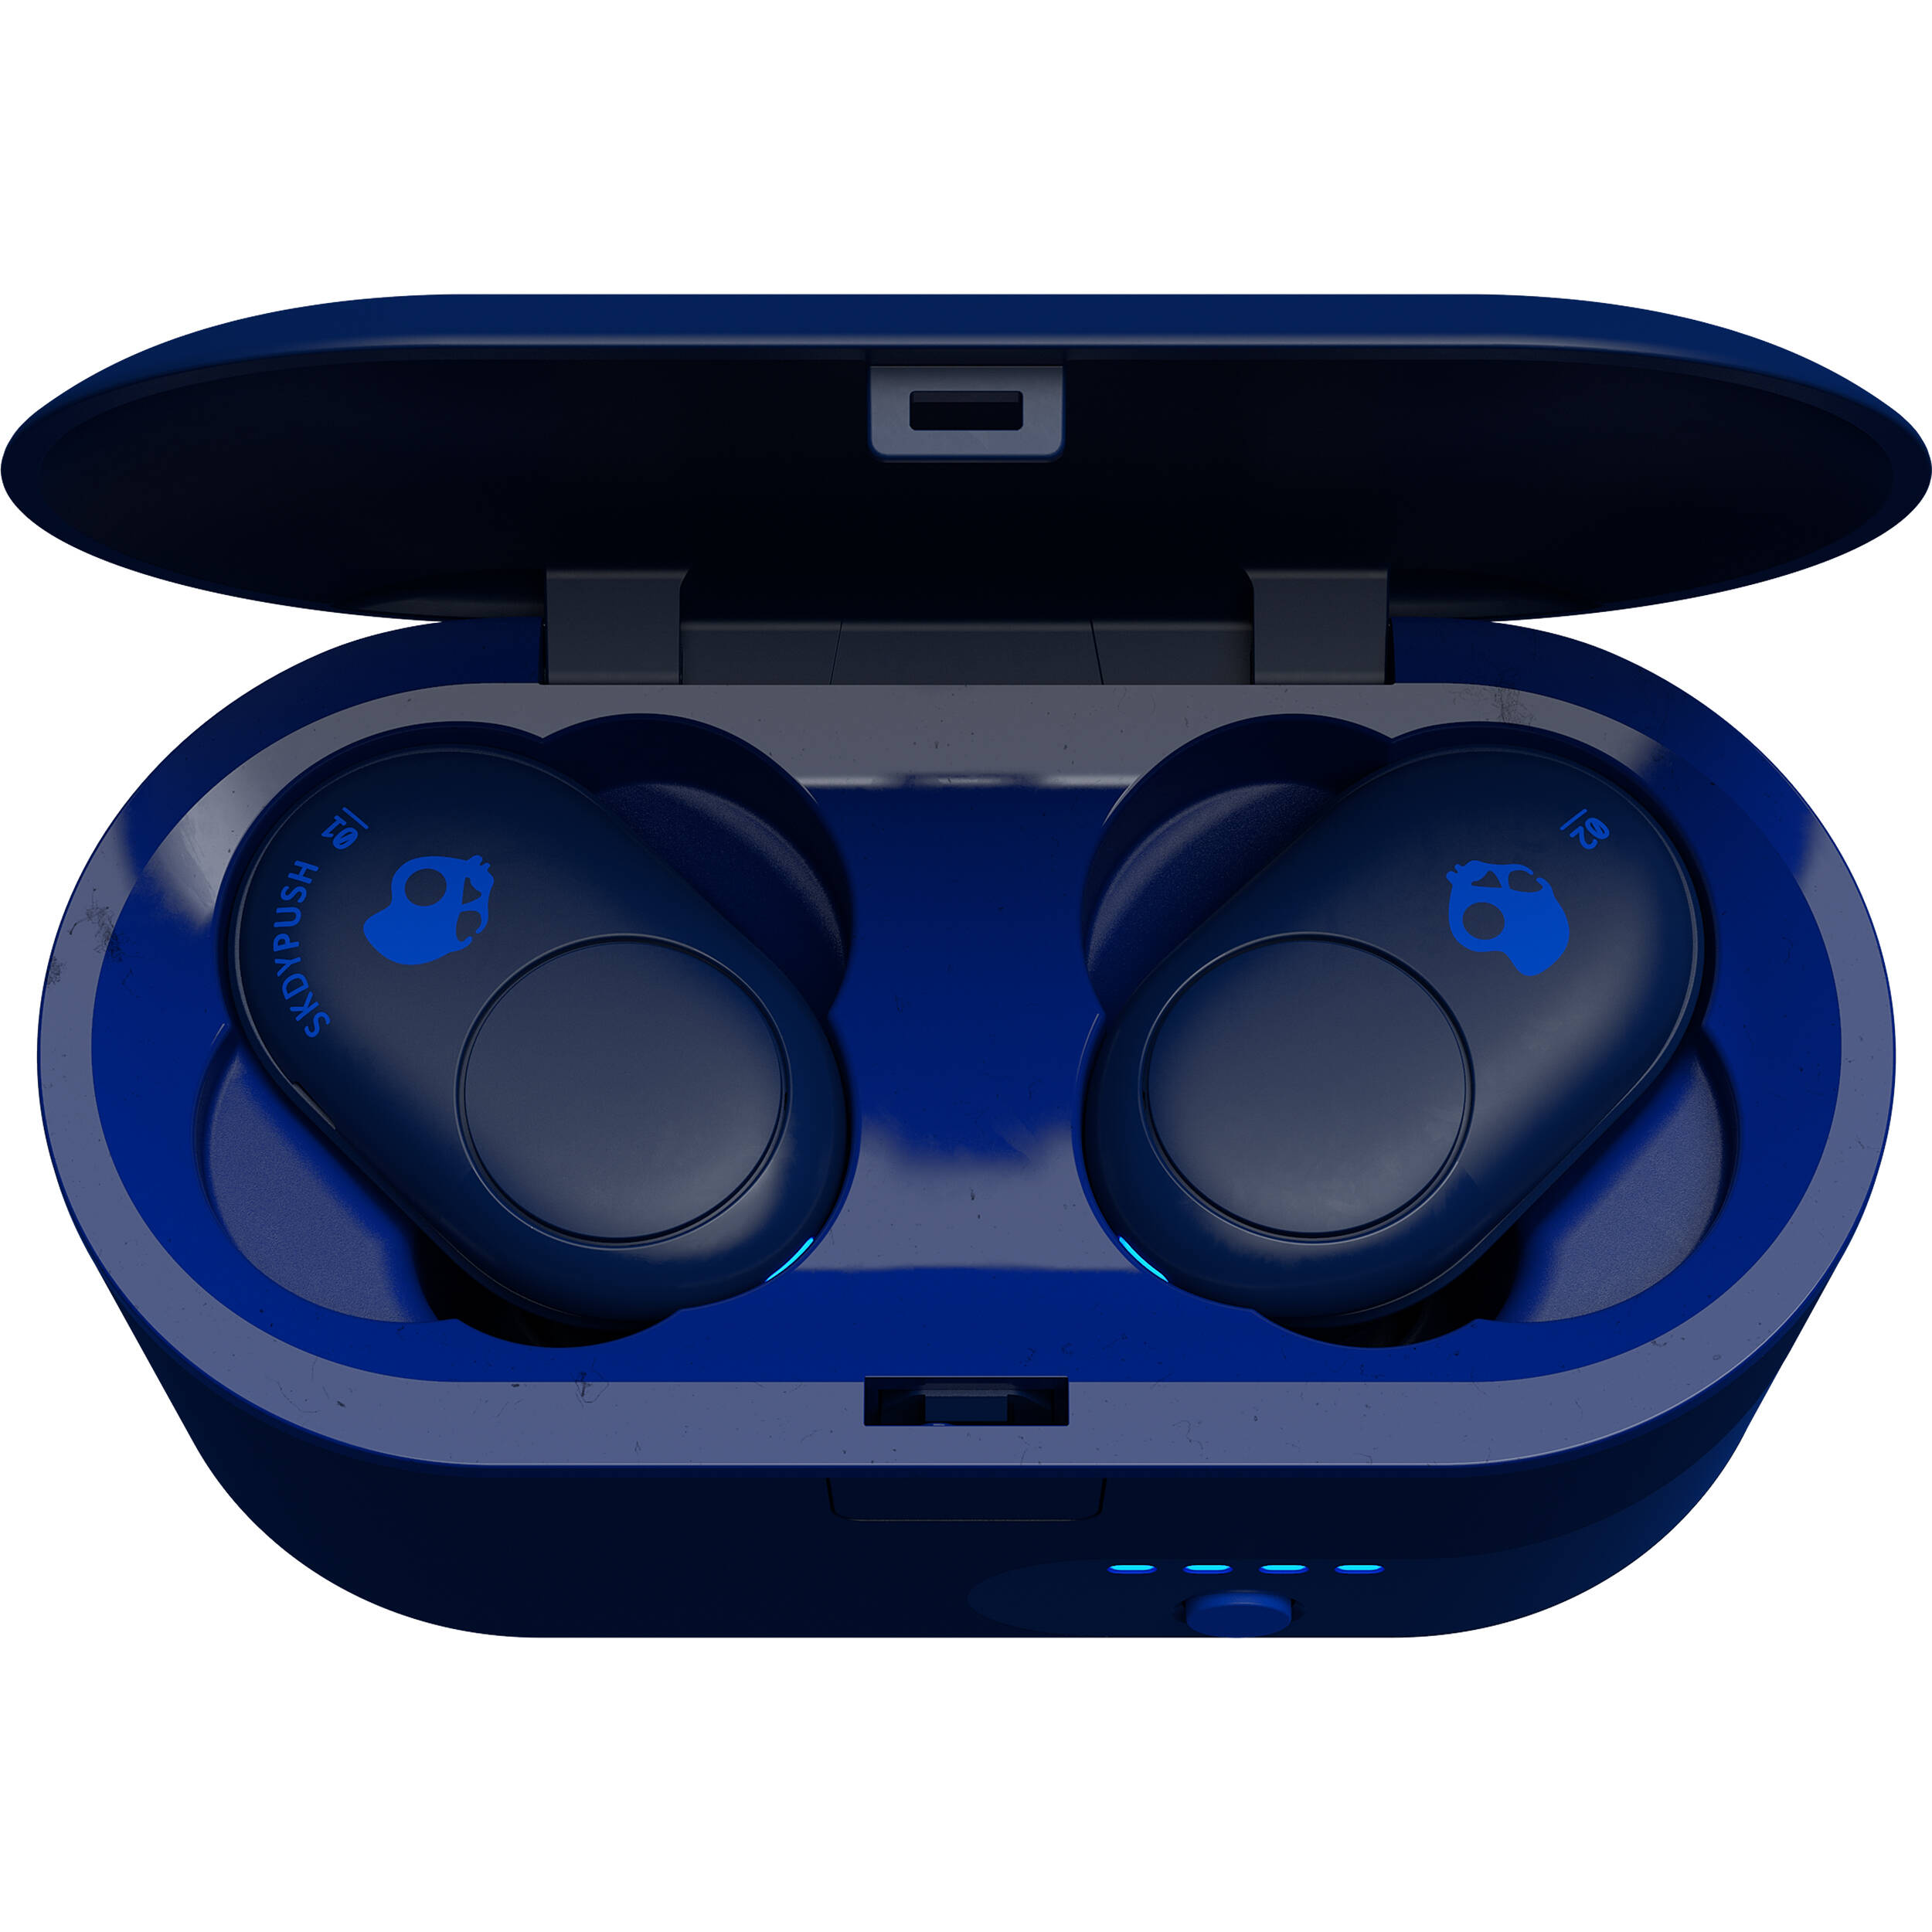 c937c86c8e5 Skullcandy Push Truly Wireless Earbuds (Indigo Blue) S2BBW-M704